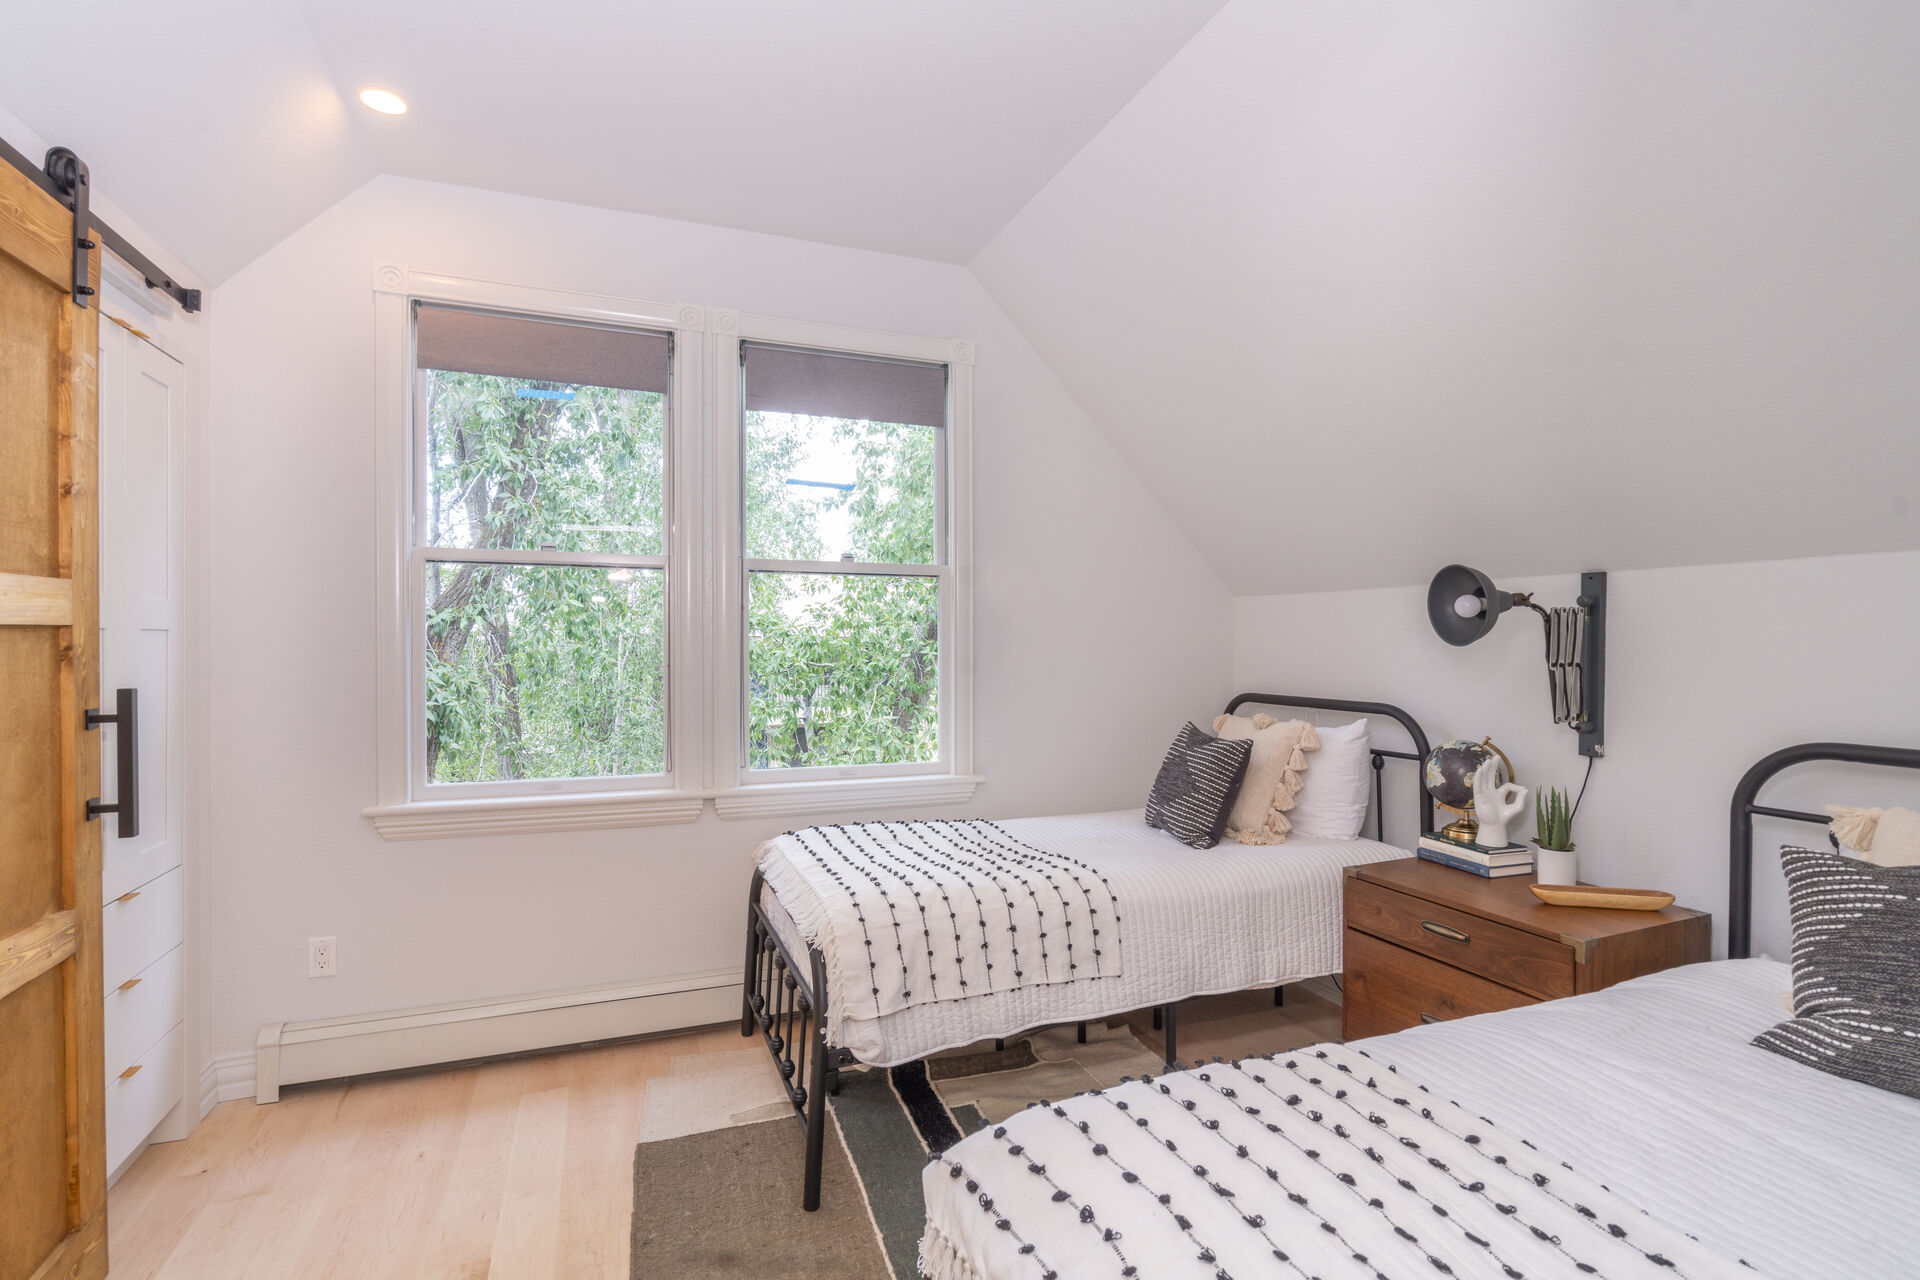 Bedroom with two beds and a nightstand